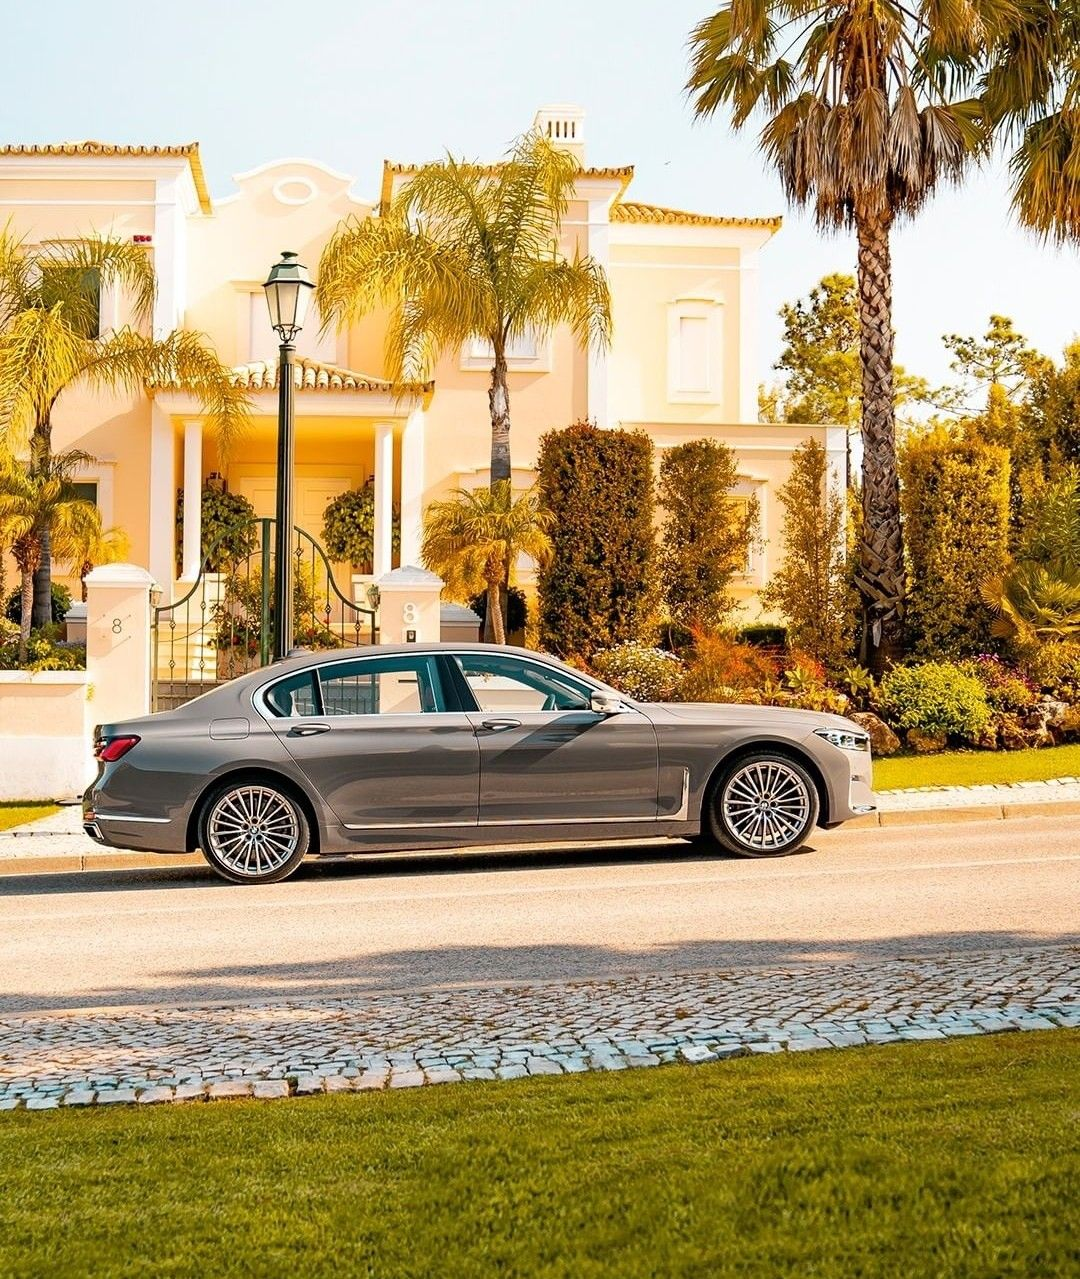 Pin by Samuel R  Clewley on Vehicles | Bmw 7 series, New bmw